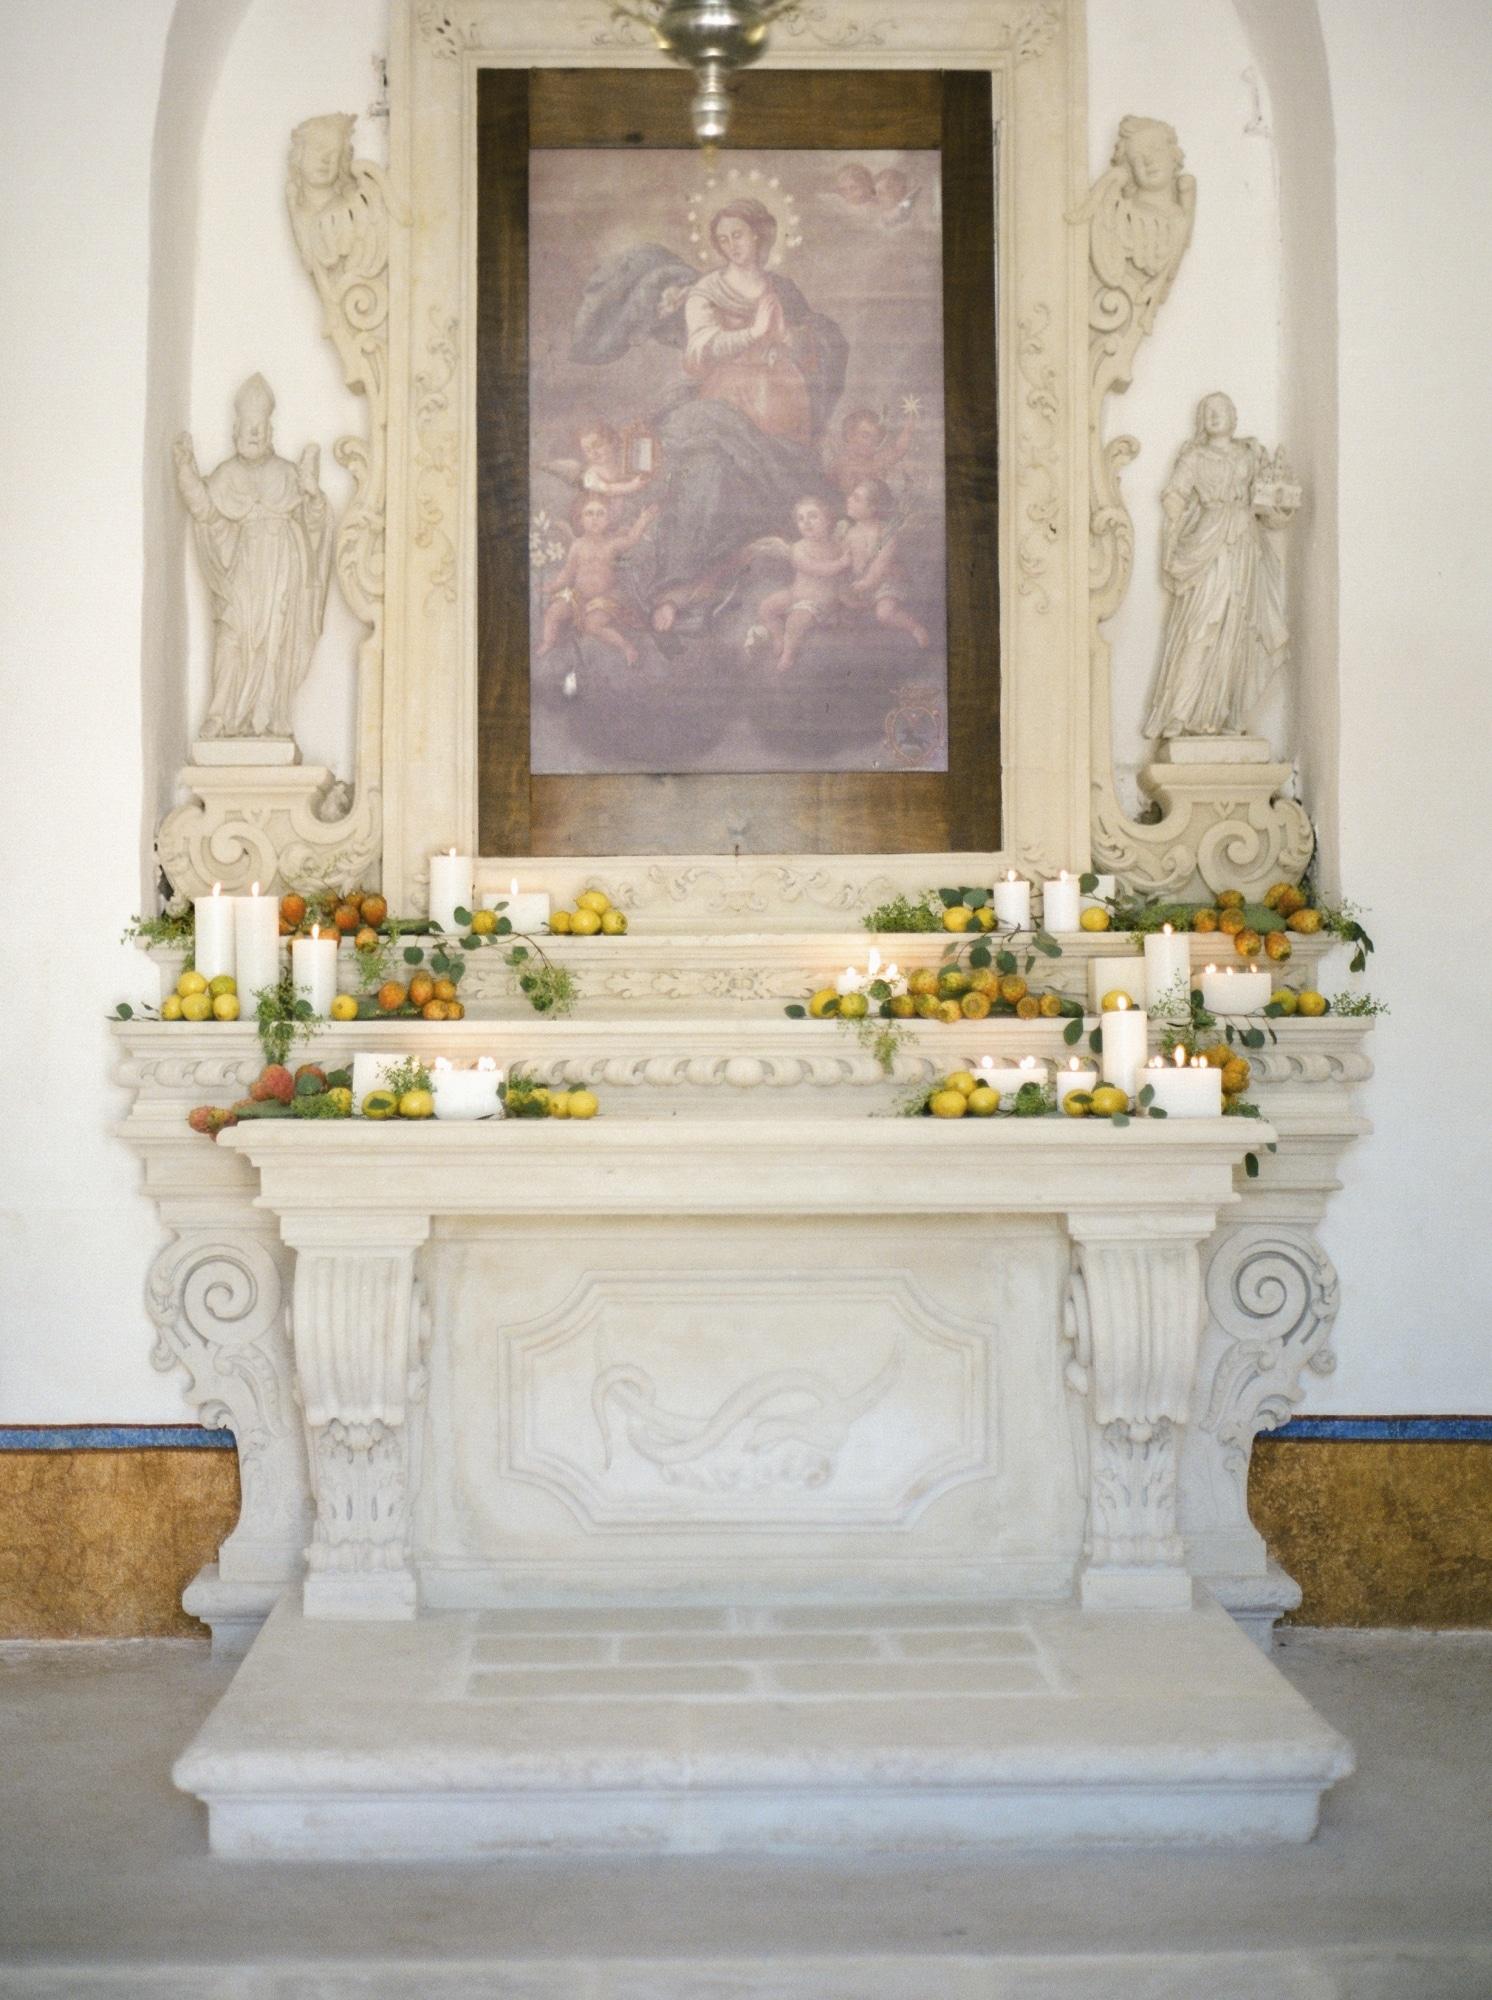 altar in church in Apulia italy with florals and candles